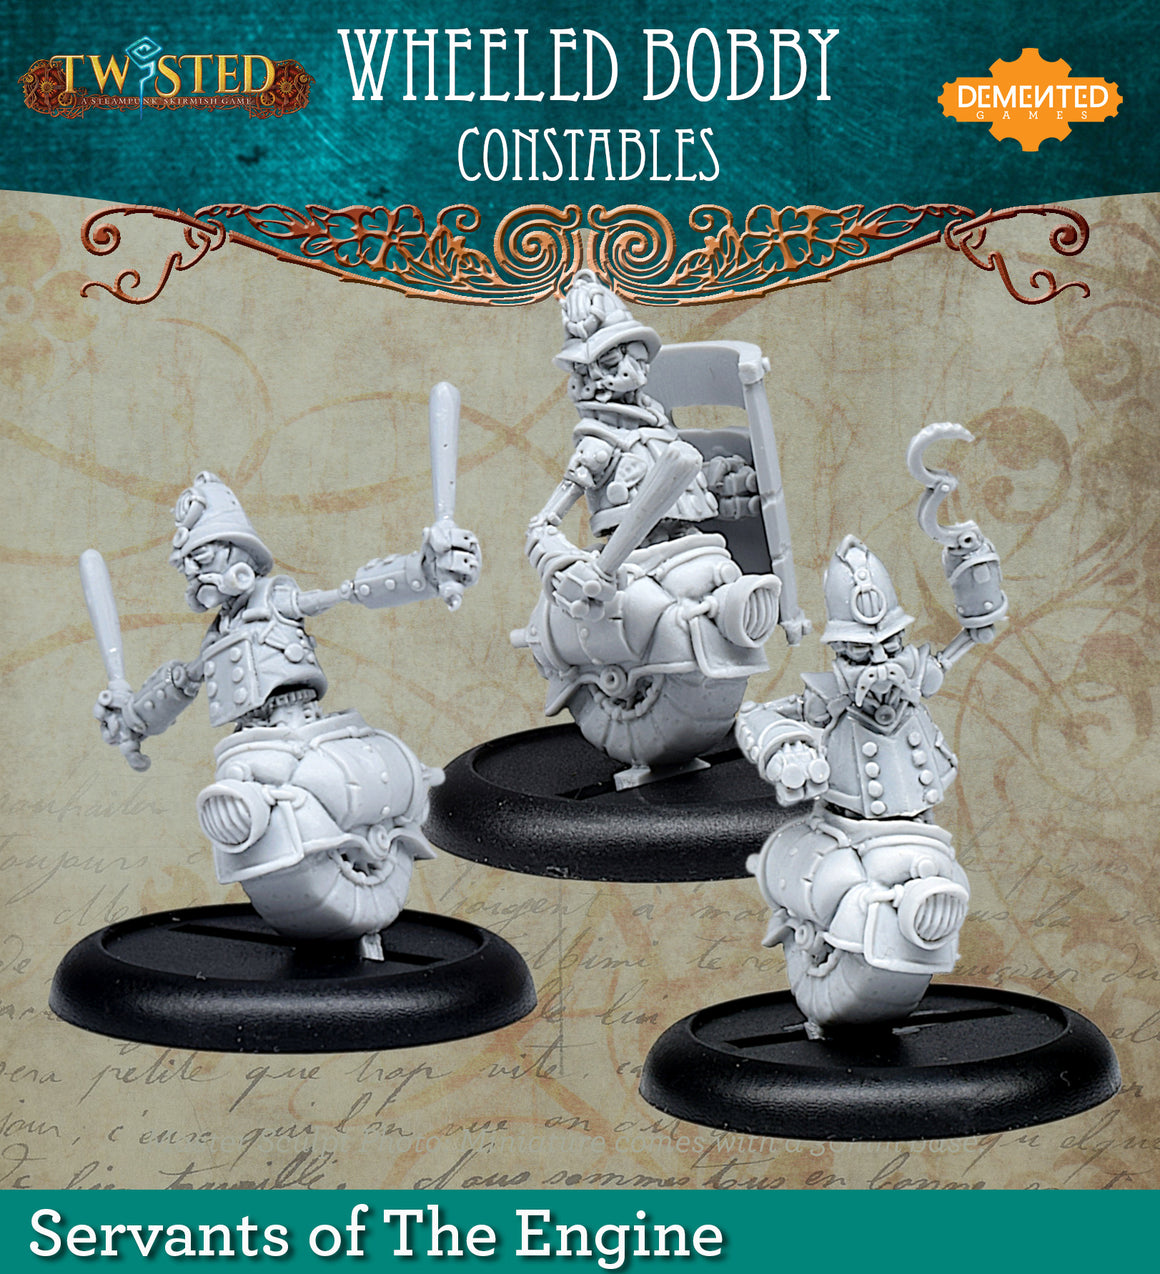 Wheeled Bobbies